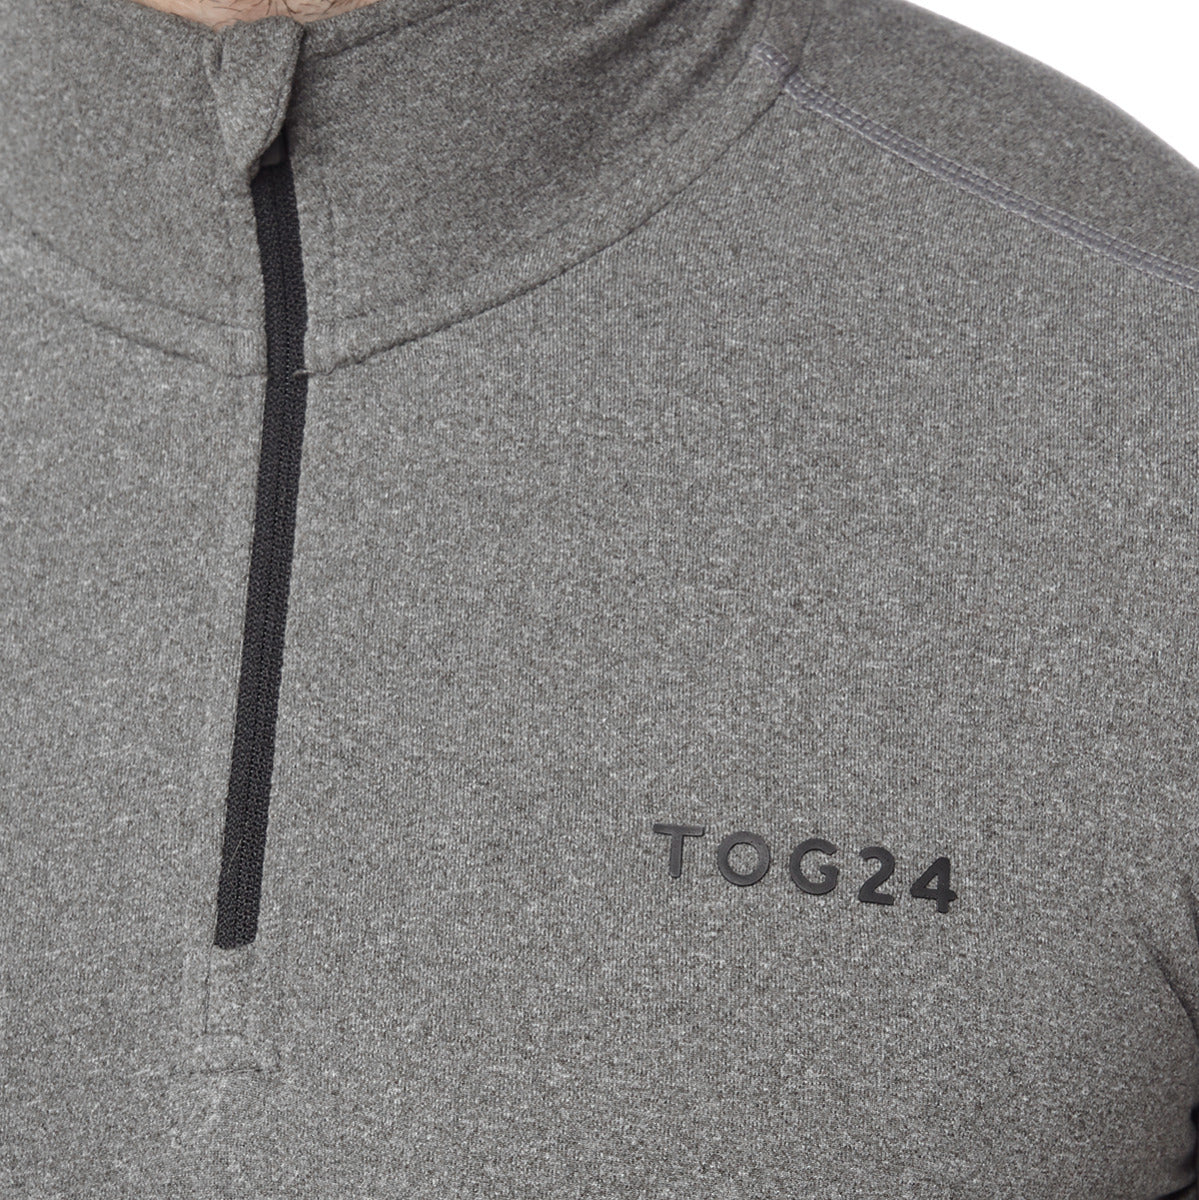 Fixby Mens Thermal Zipneck - Grey Marl image 4